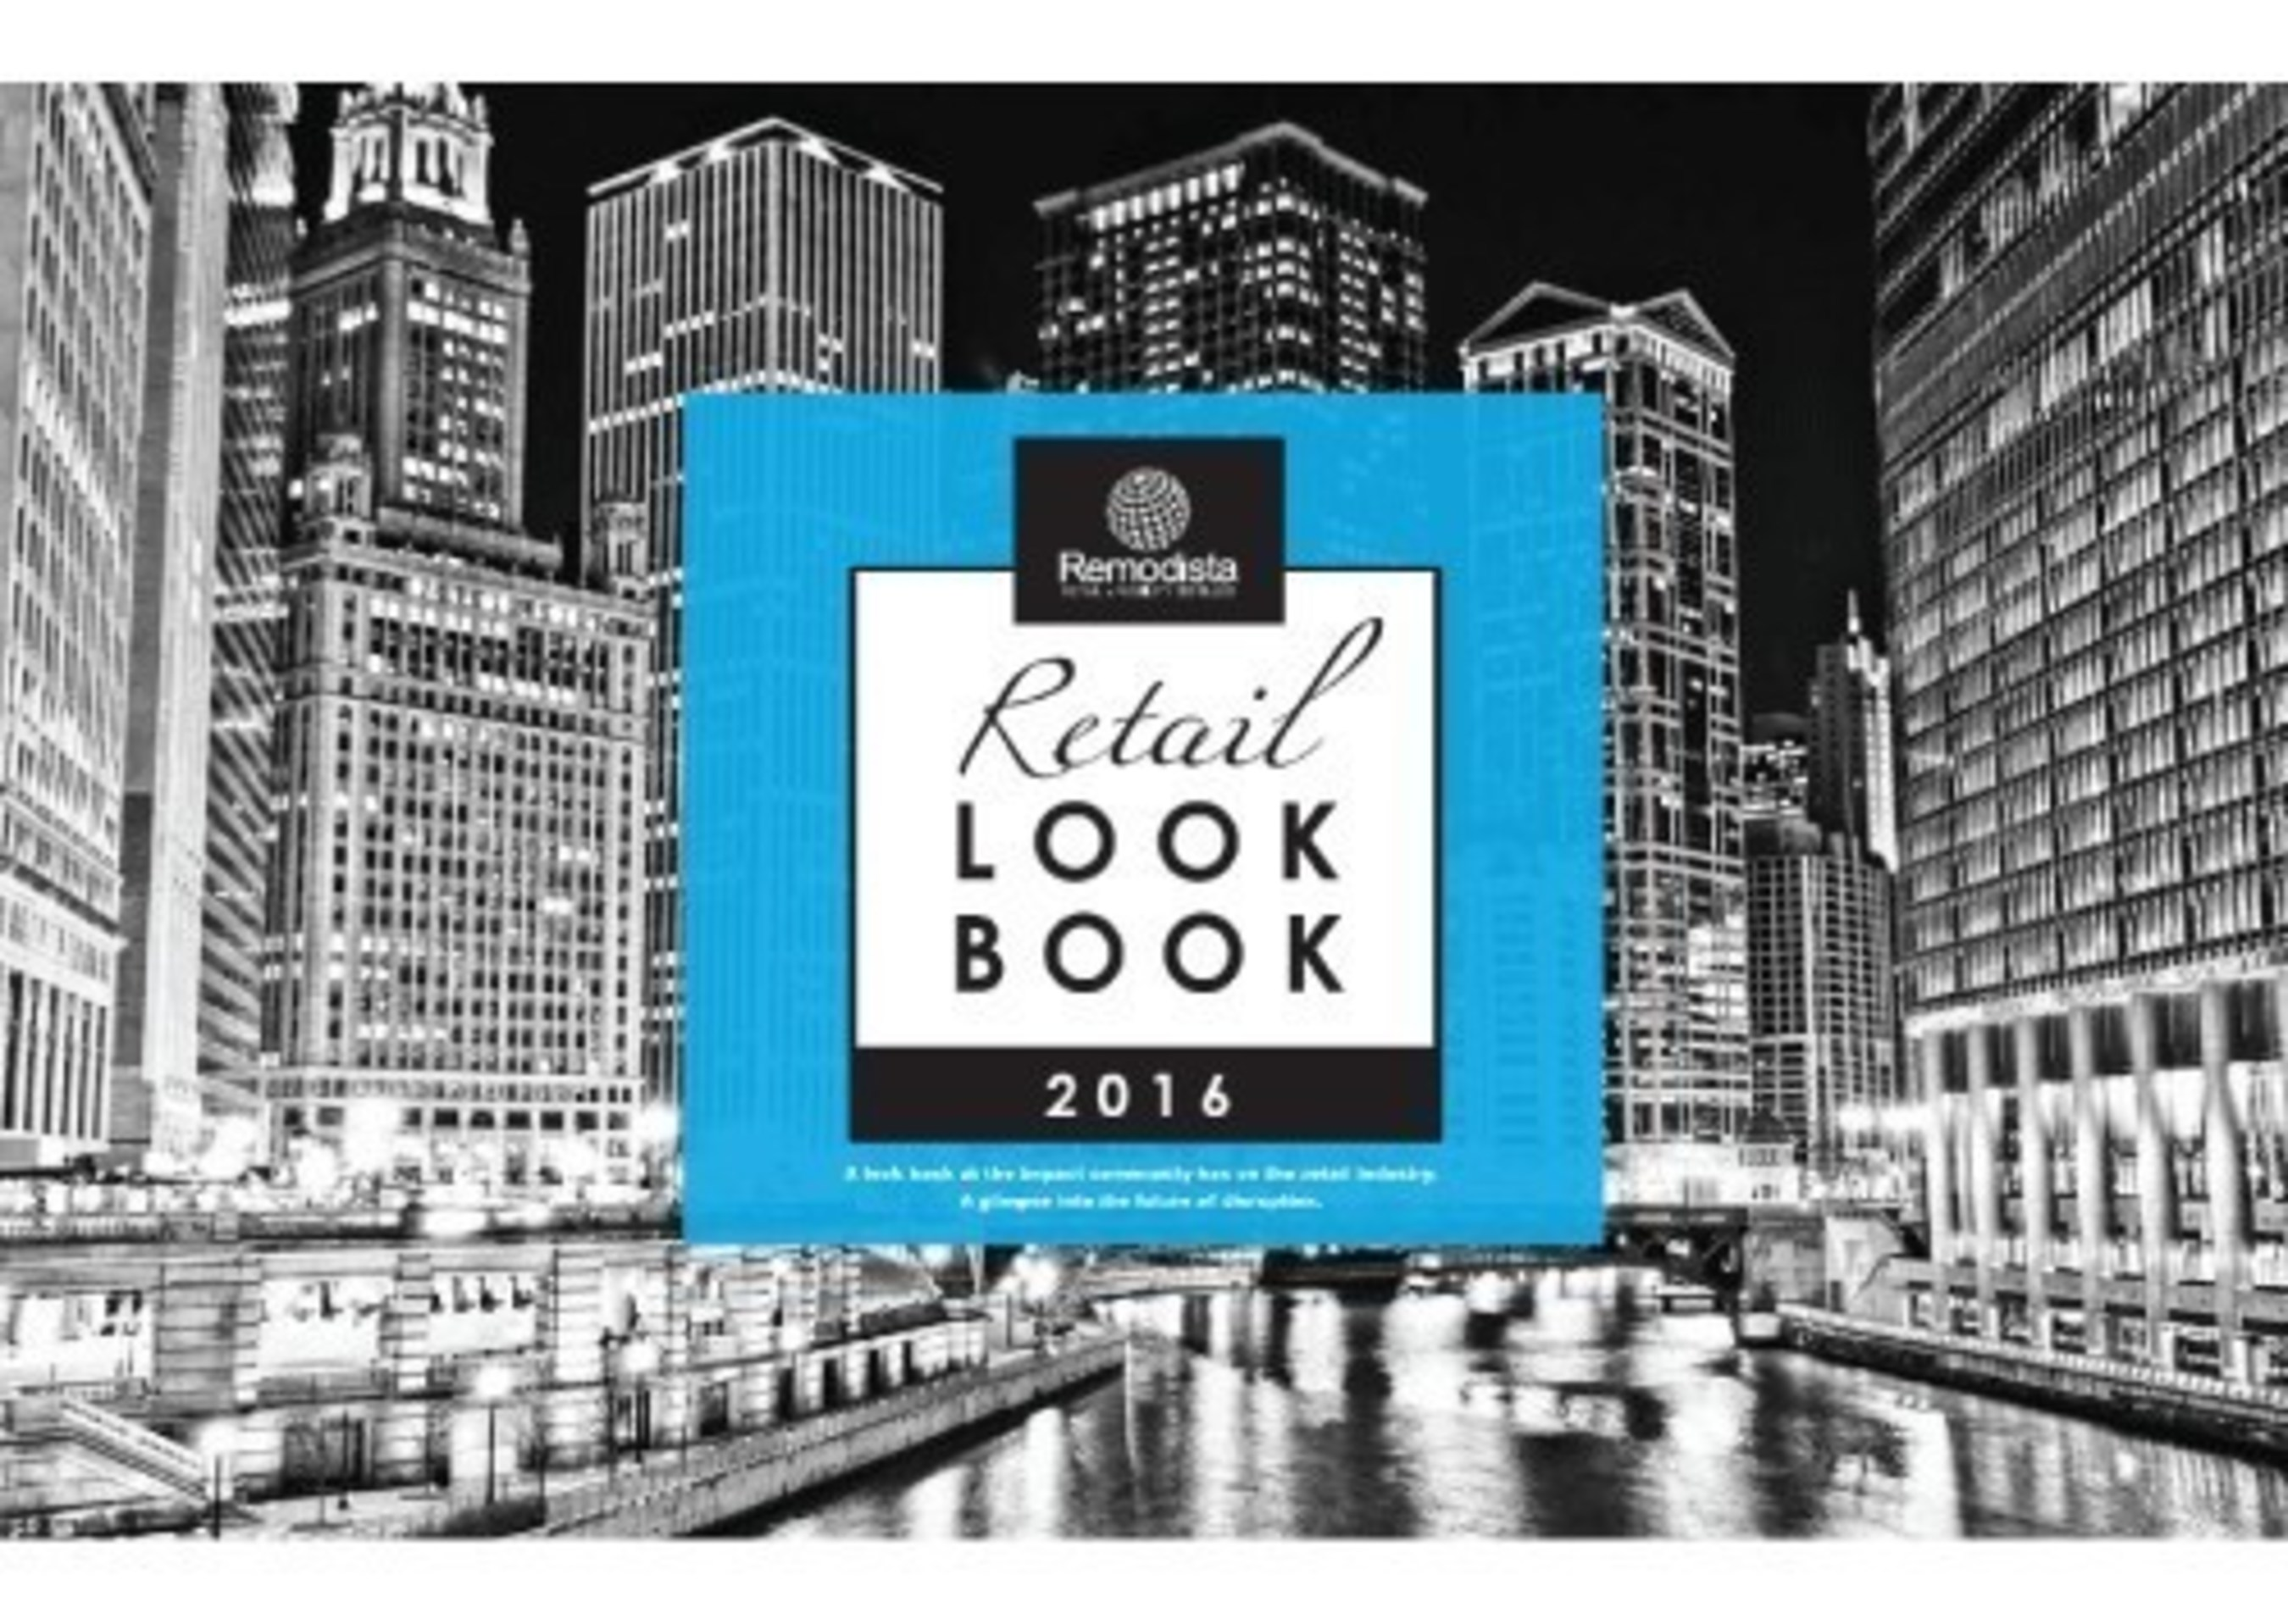 Remodista Launches Look Book of Insights on Disruption in Global Retail